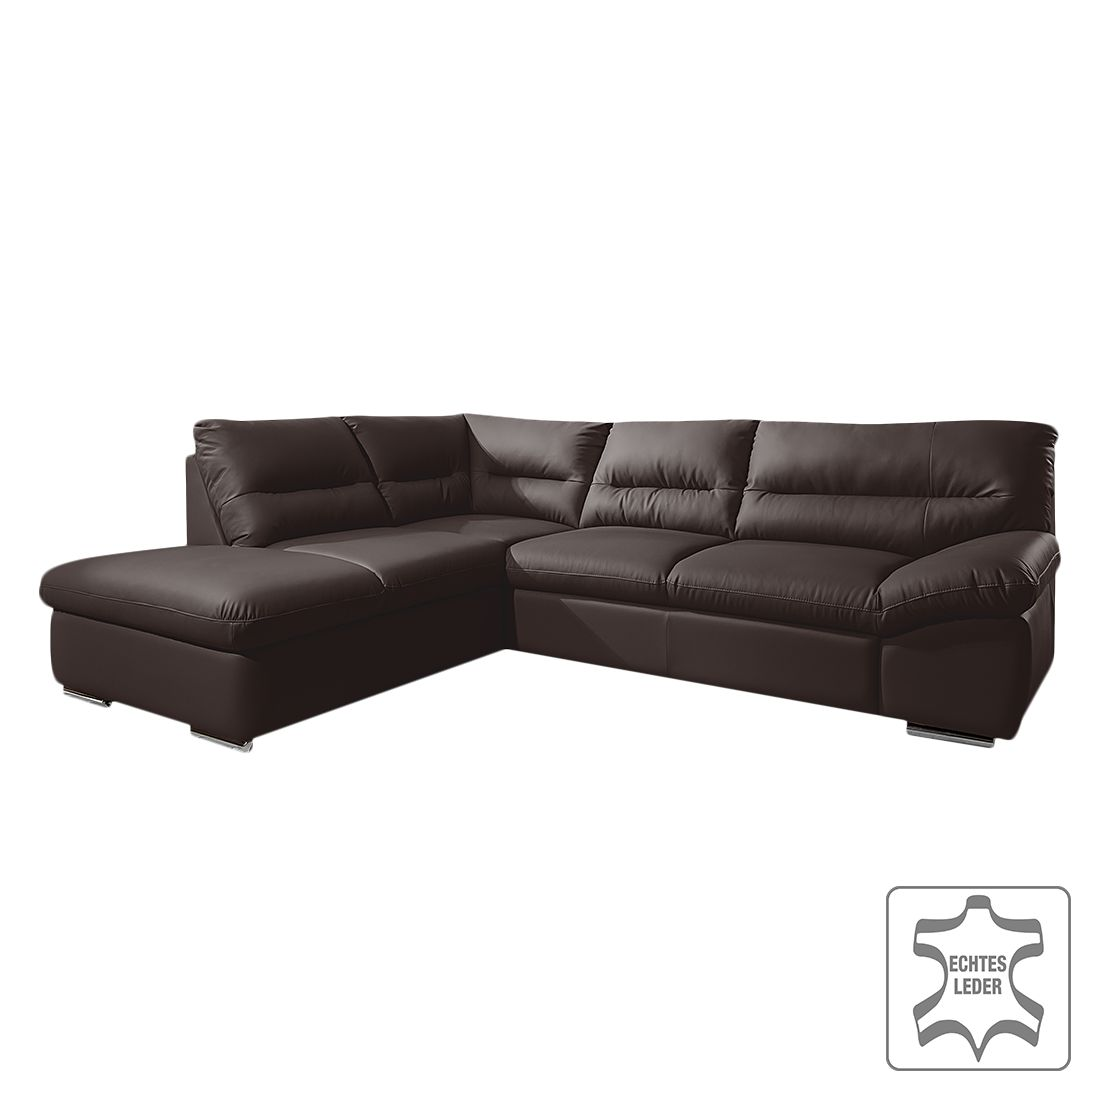 ecksofa doug mit schlaffunktion echtleder dunkelbraun. Black Bedroom Furniture Sets. Home Design Ideas